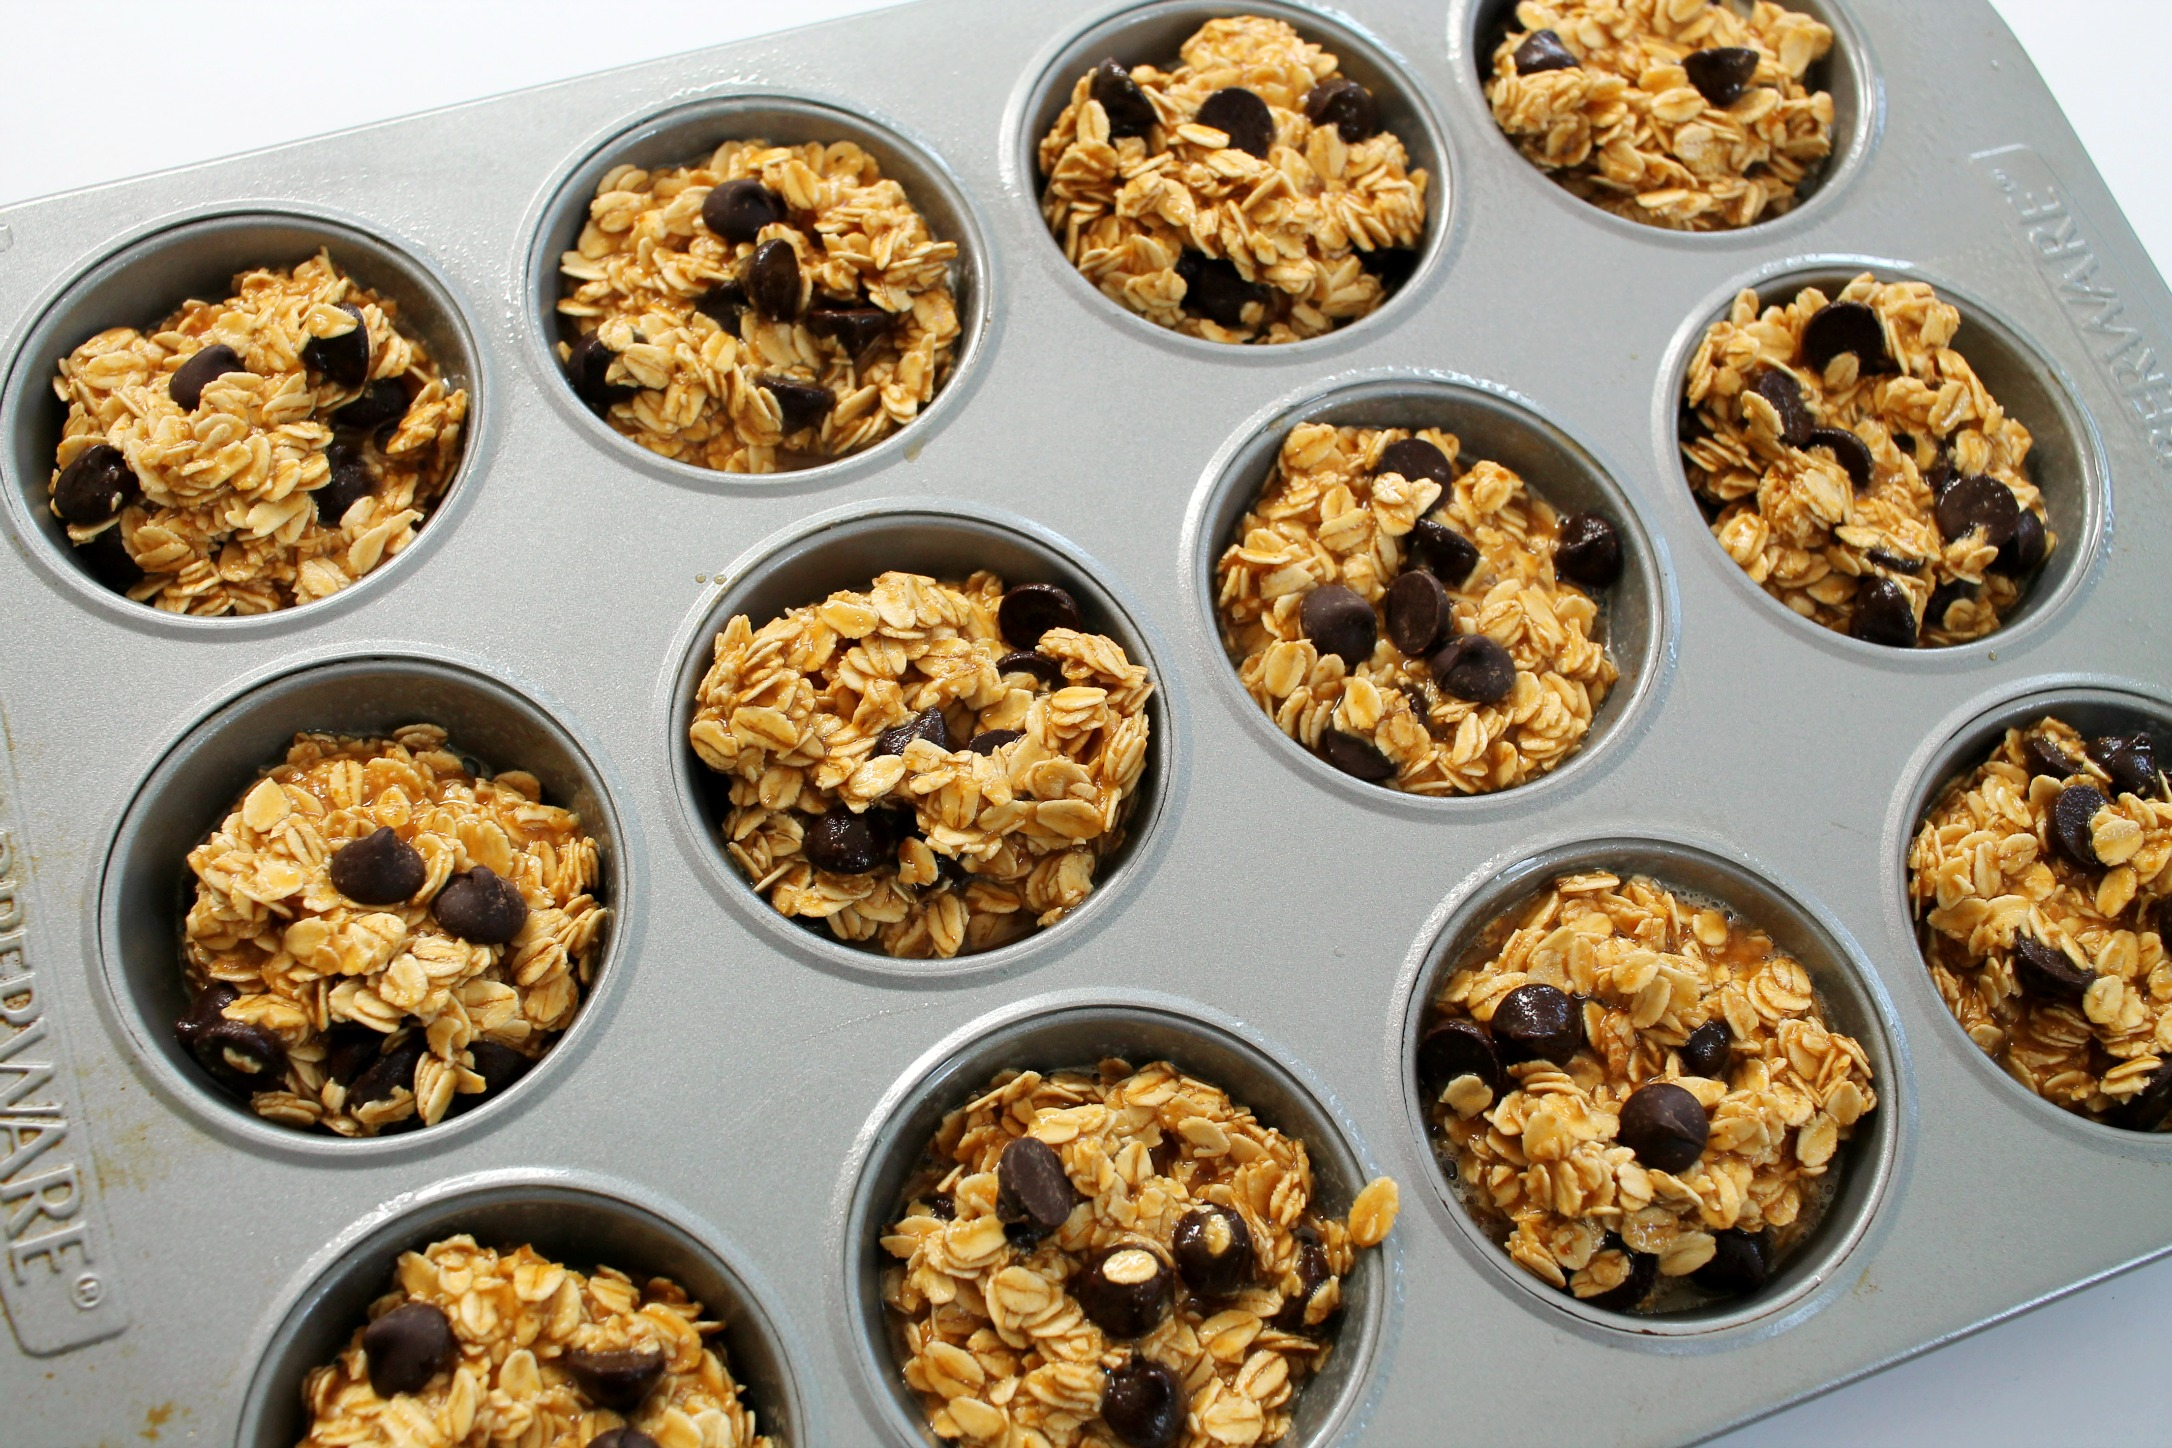 peanut butter chocolate chip baked oatmeal muffins in the muffin pan before baking